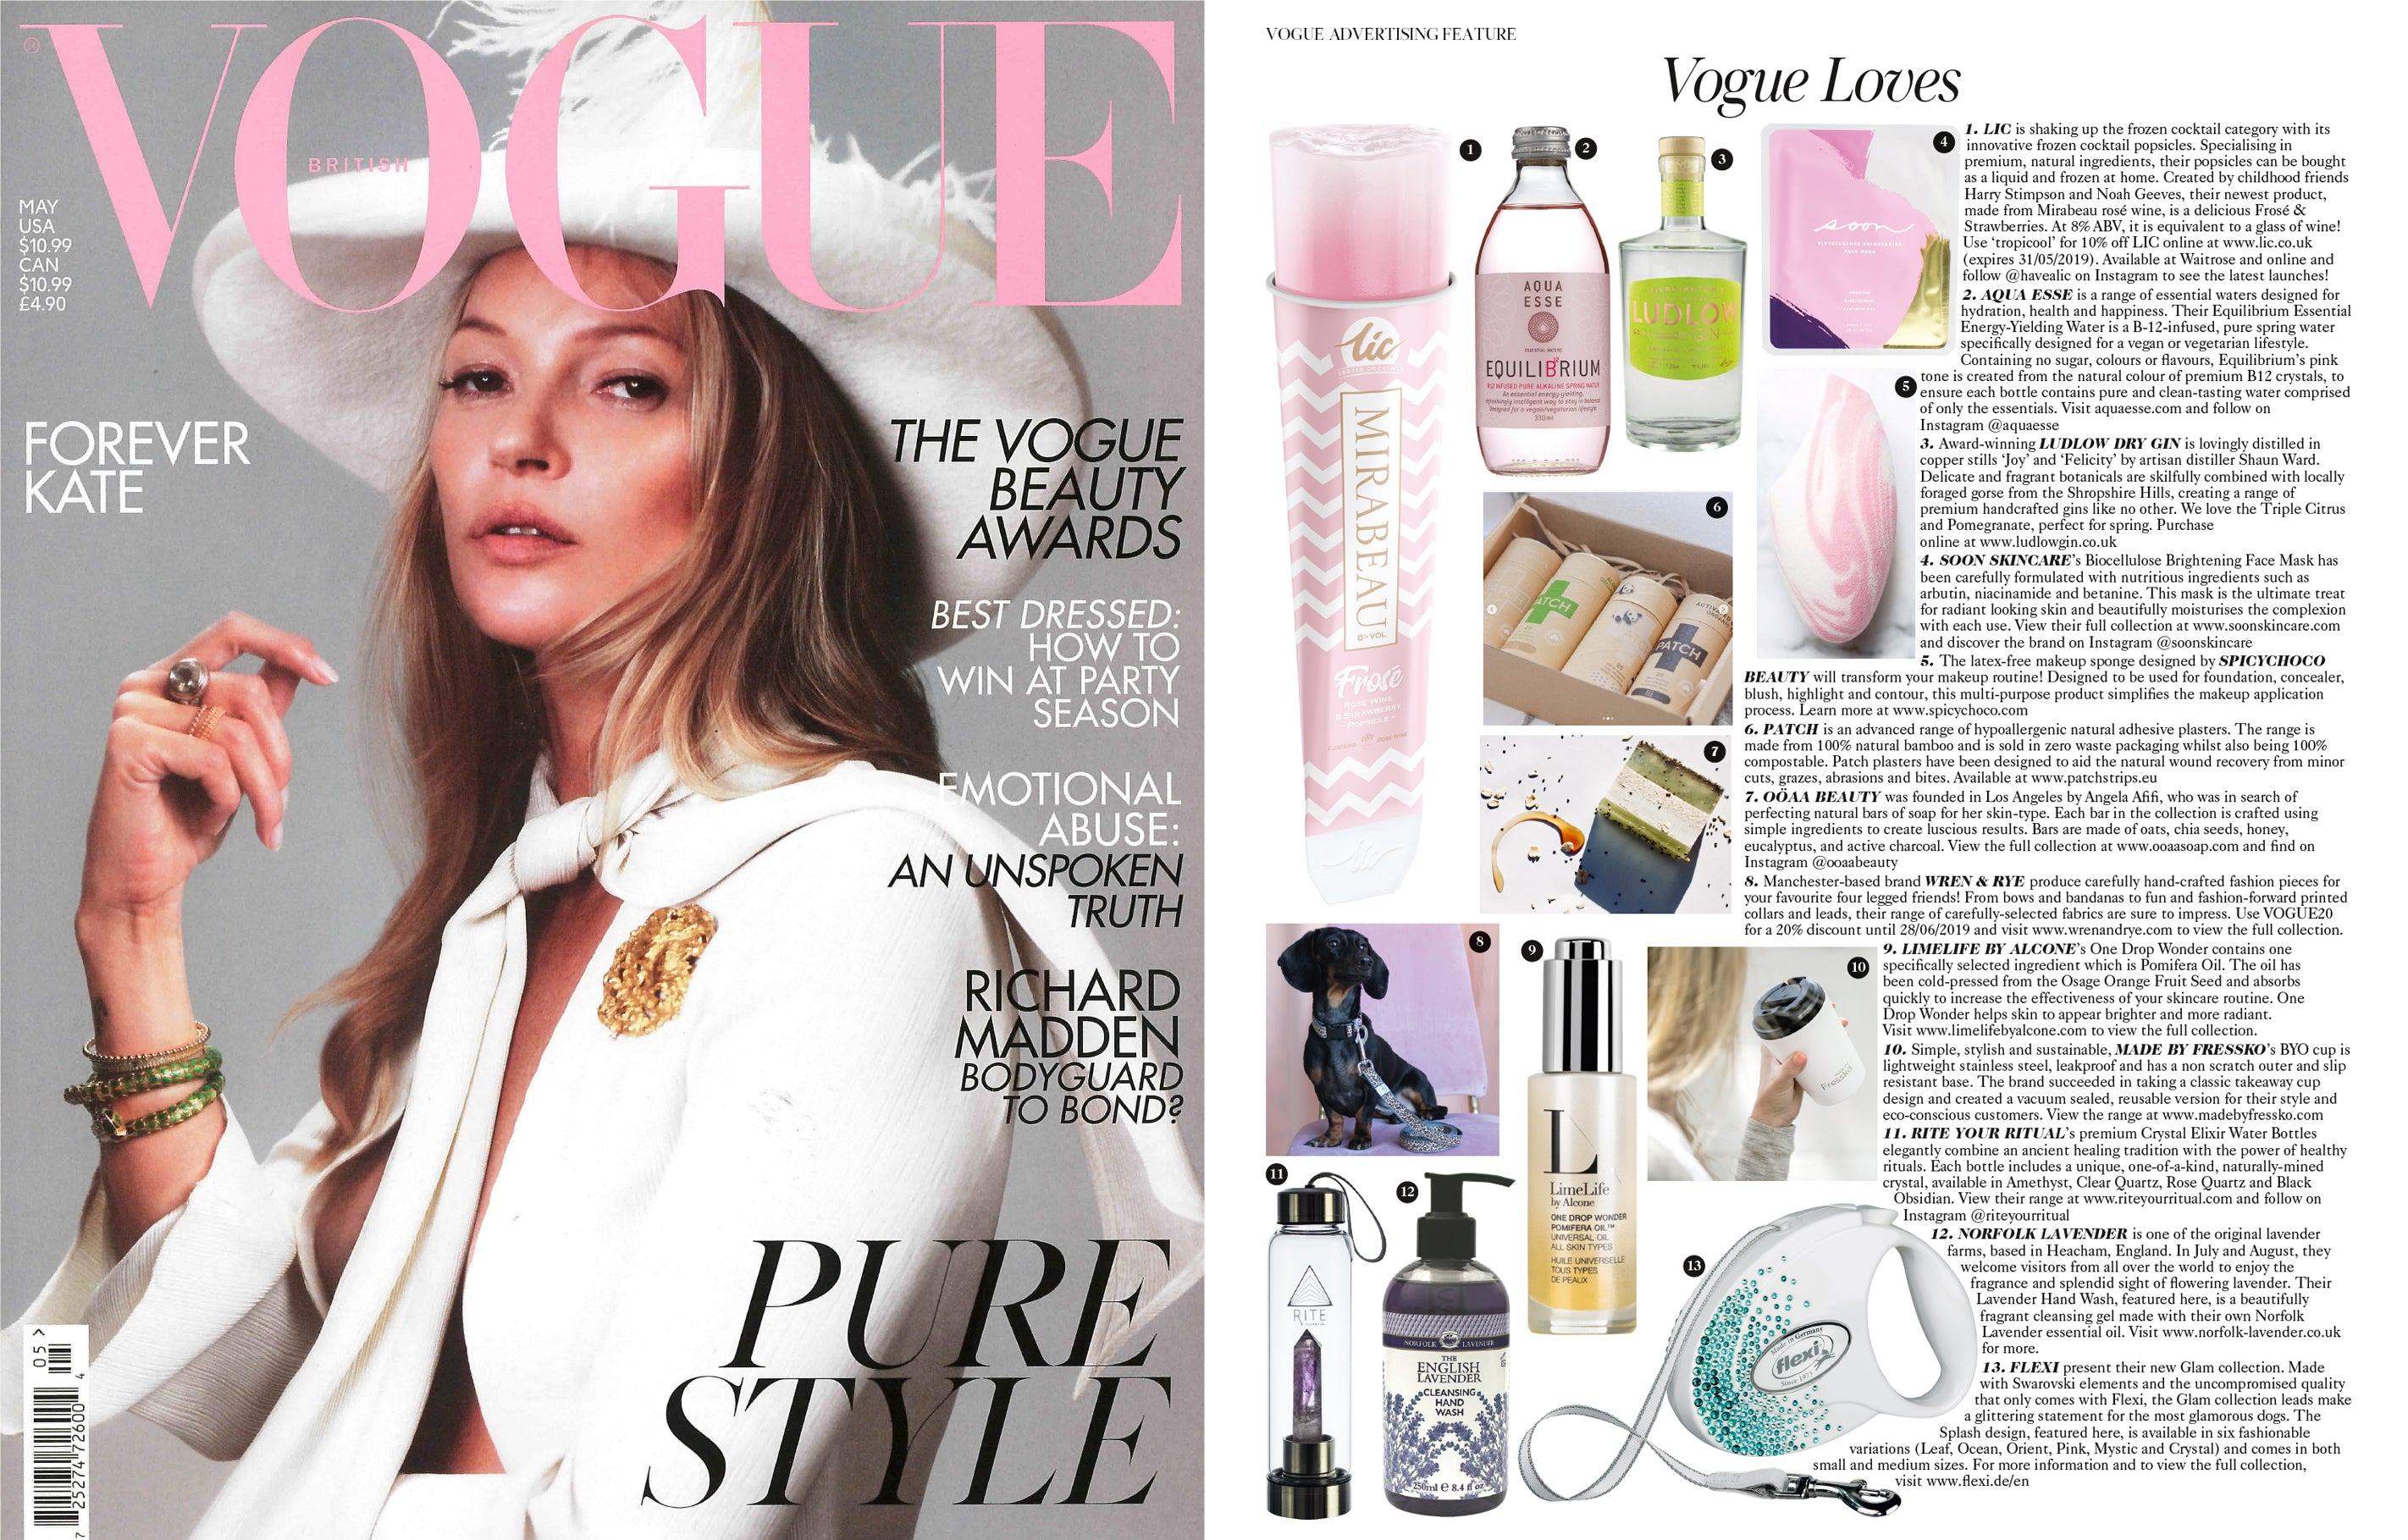 Wren & Rye - Press Vogue Magazine May Issue